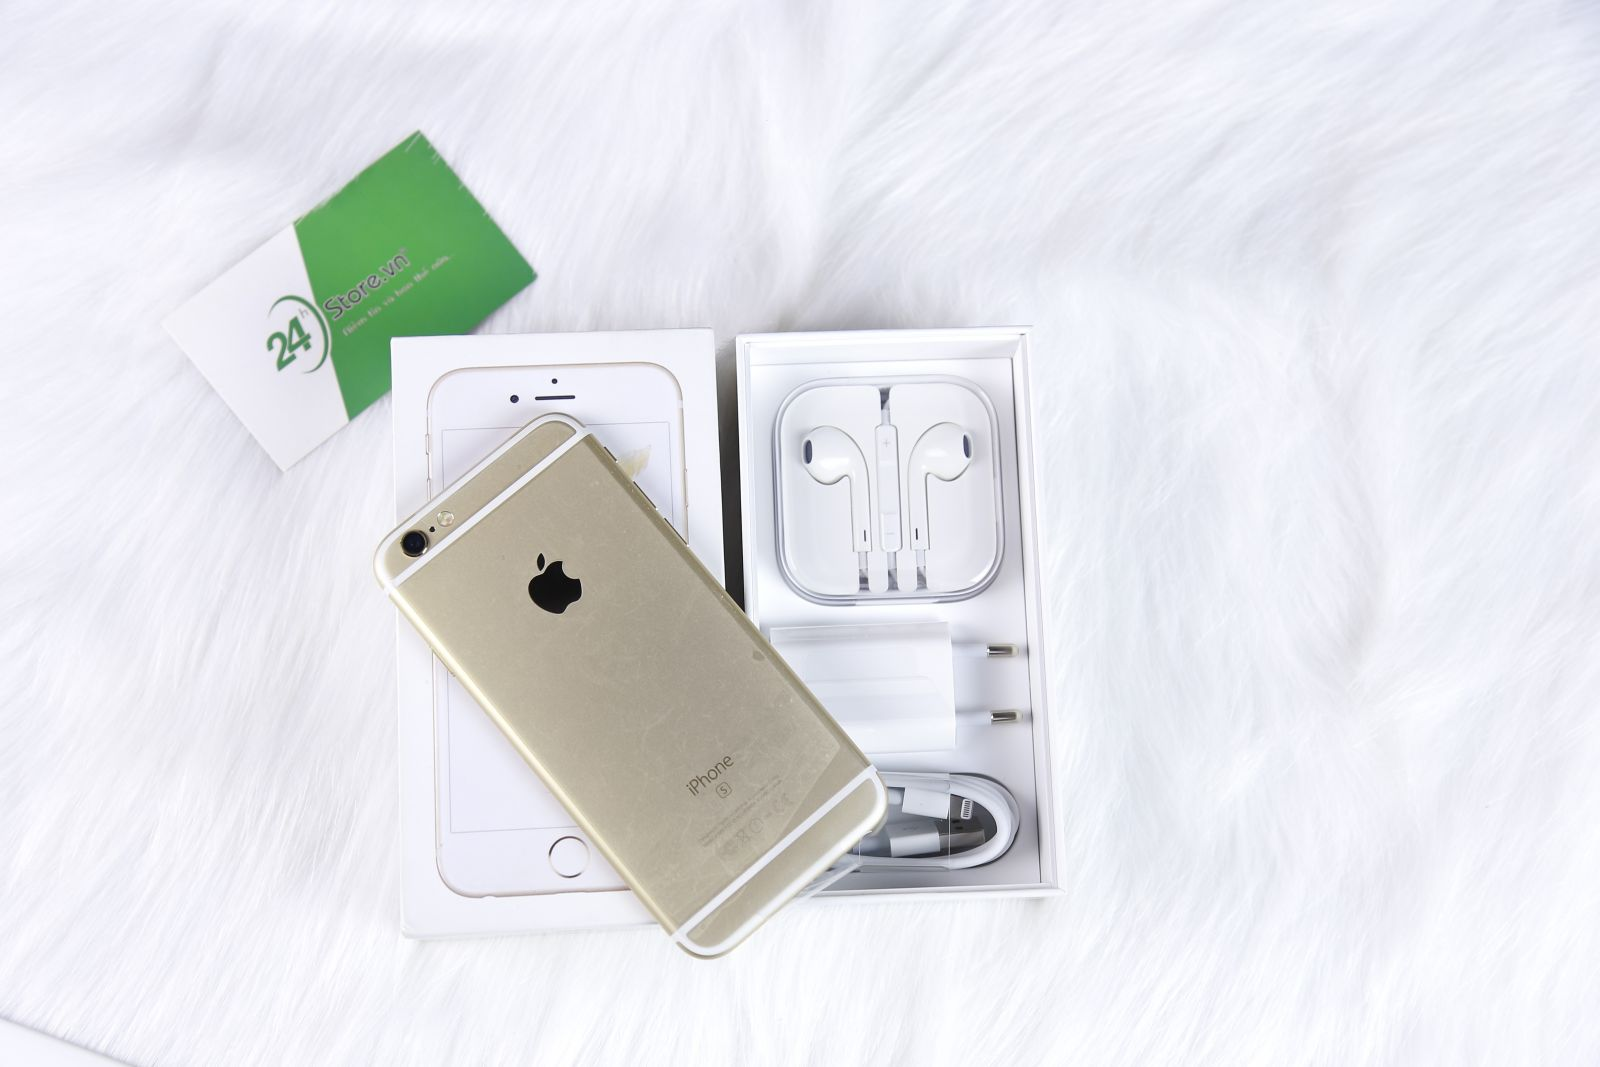 iphone 6s 64gb hinh anh 1